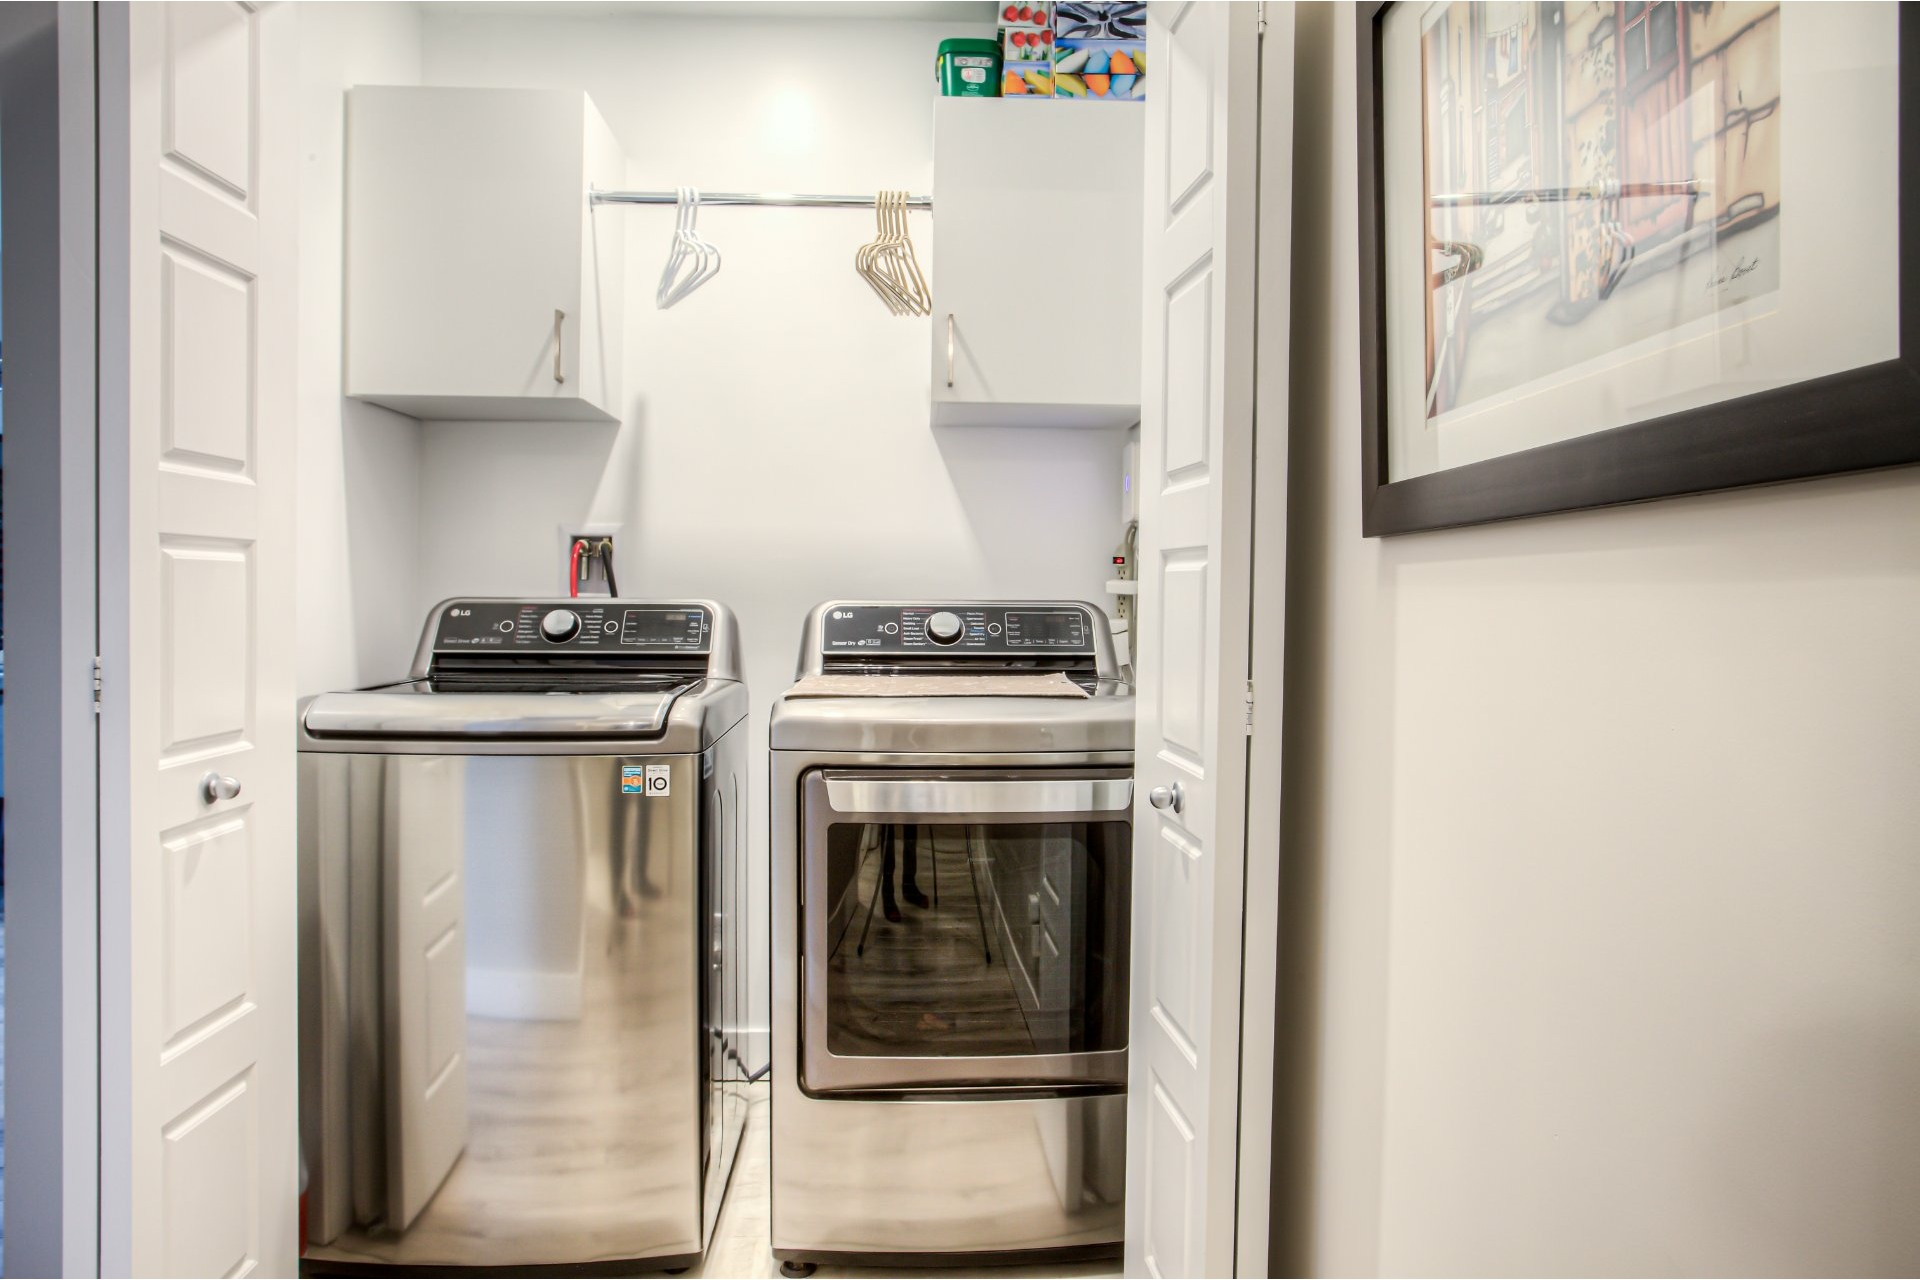 image 16 - Apartment For sale Vaudreuil-Dorion - 7 rooms